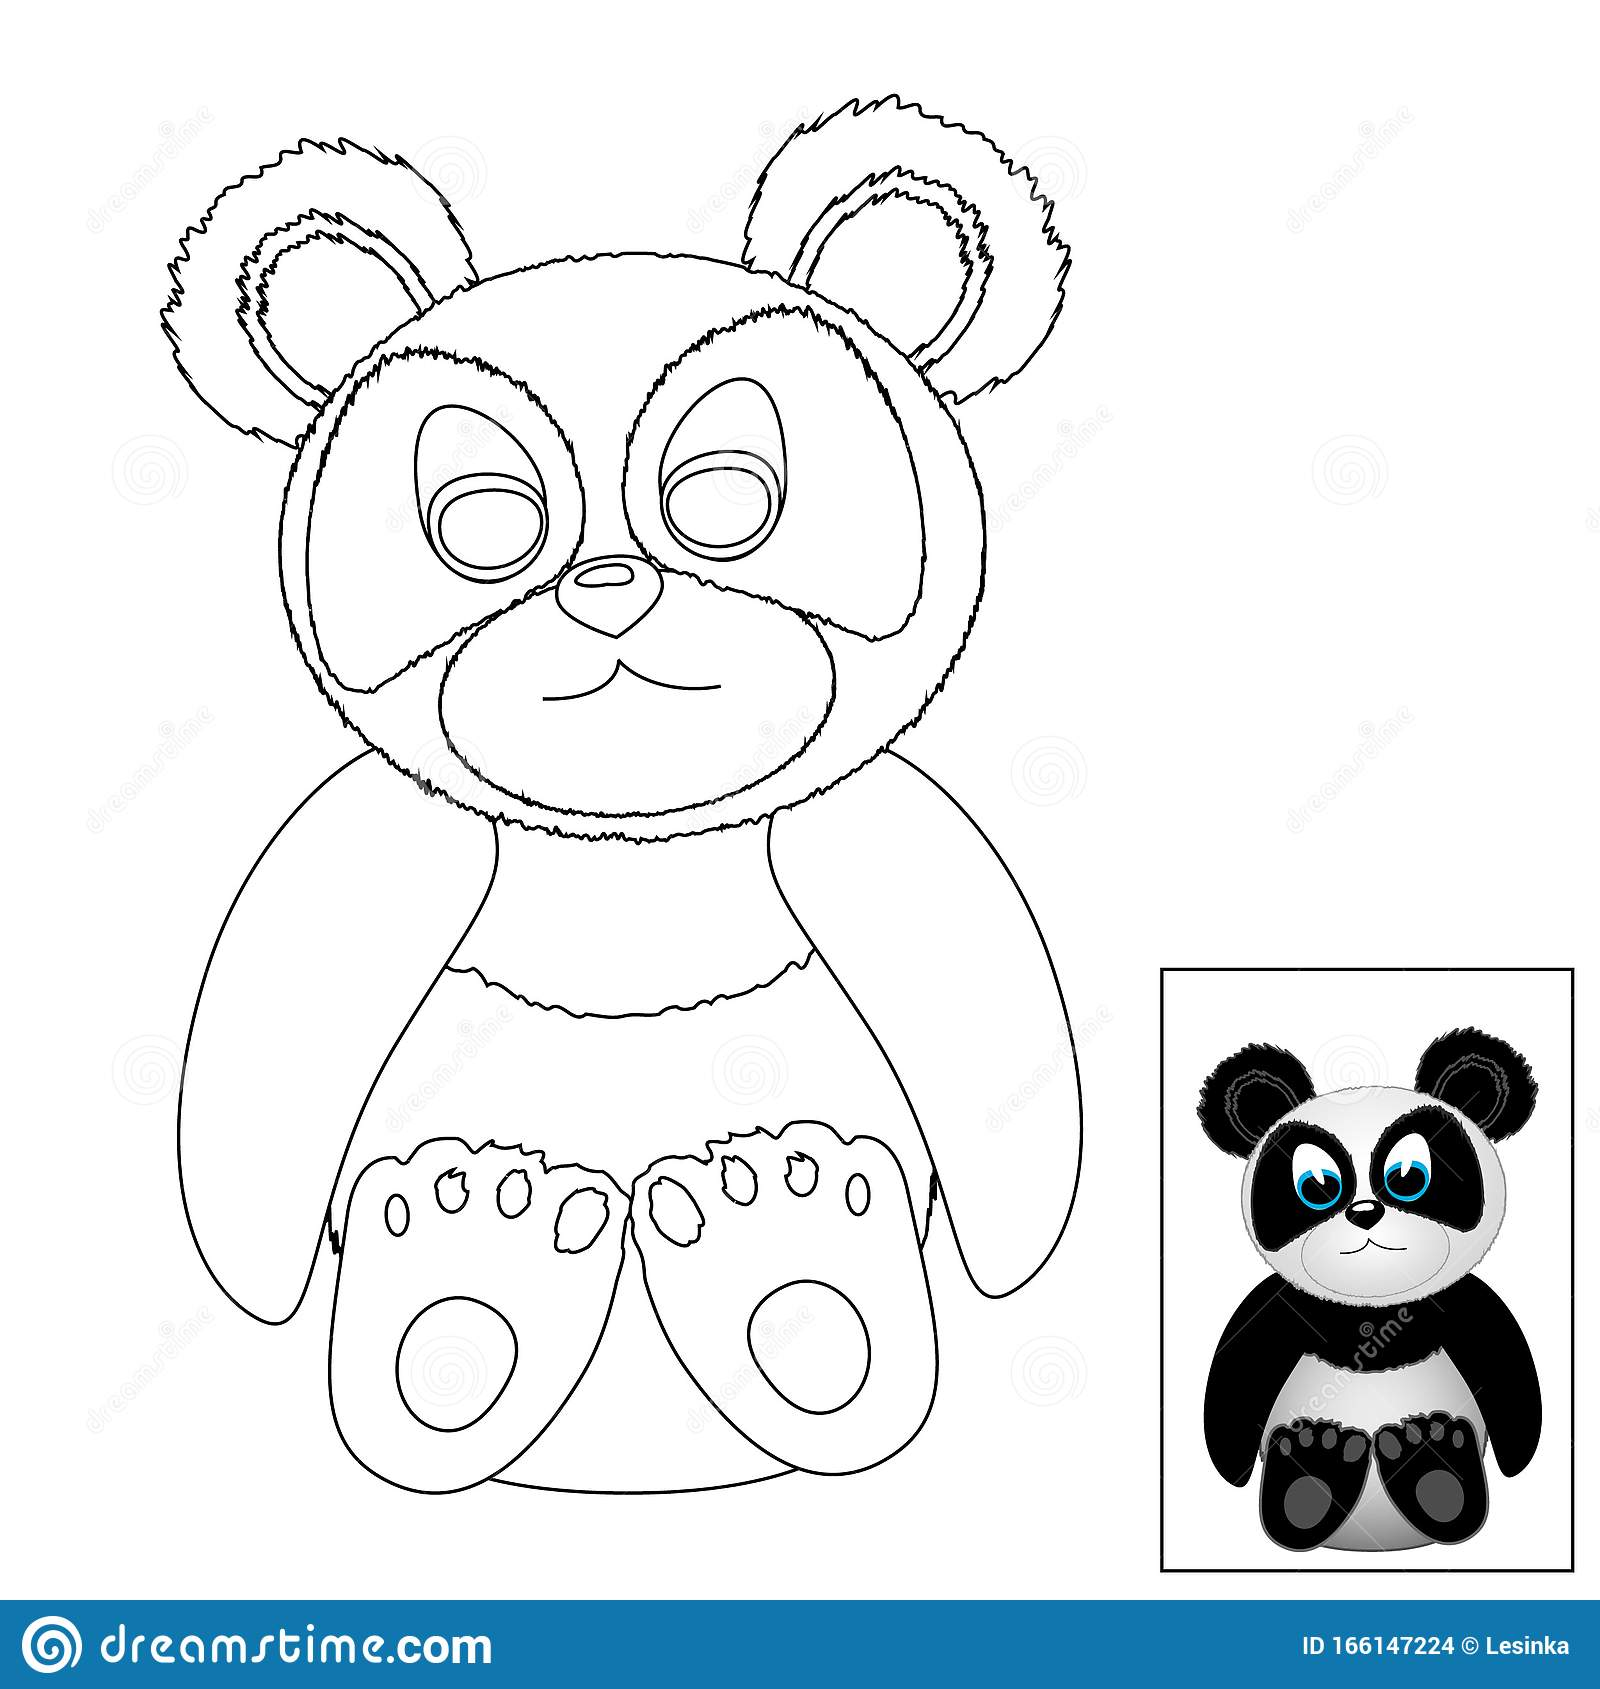 Stuffed Toy Coloring Pages | Stuffed Dog, Rabbit, and Duck ... | 1689x1600